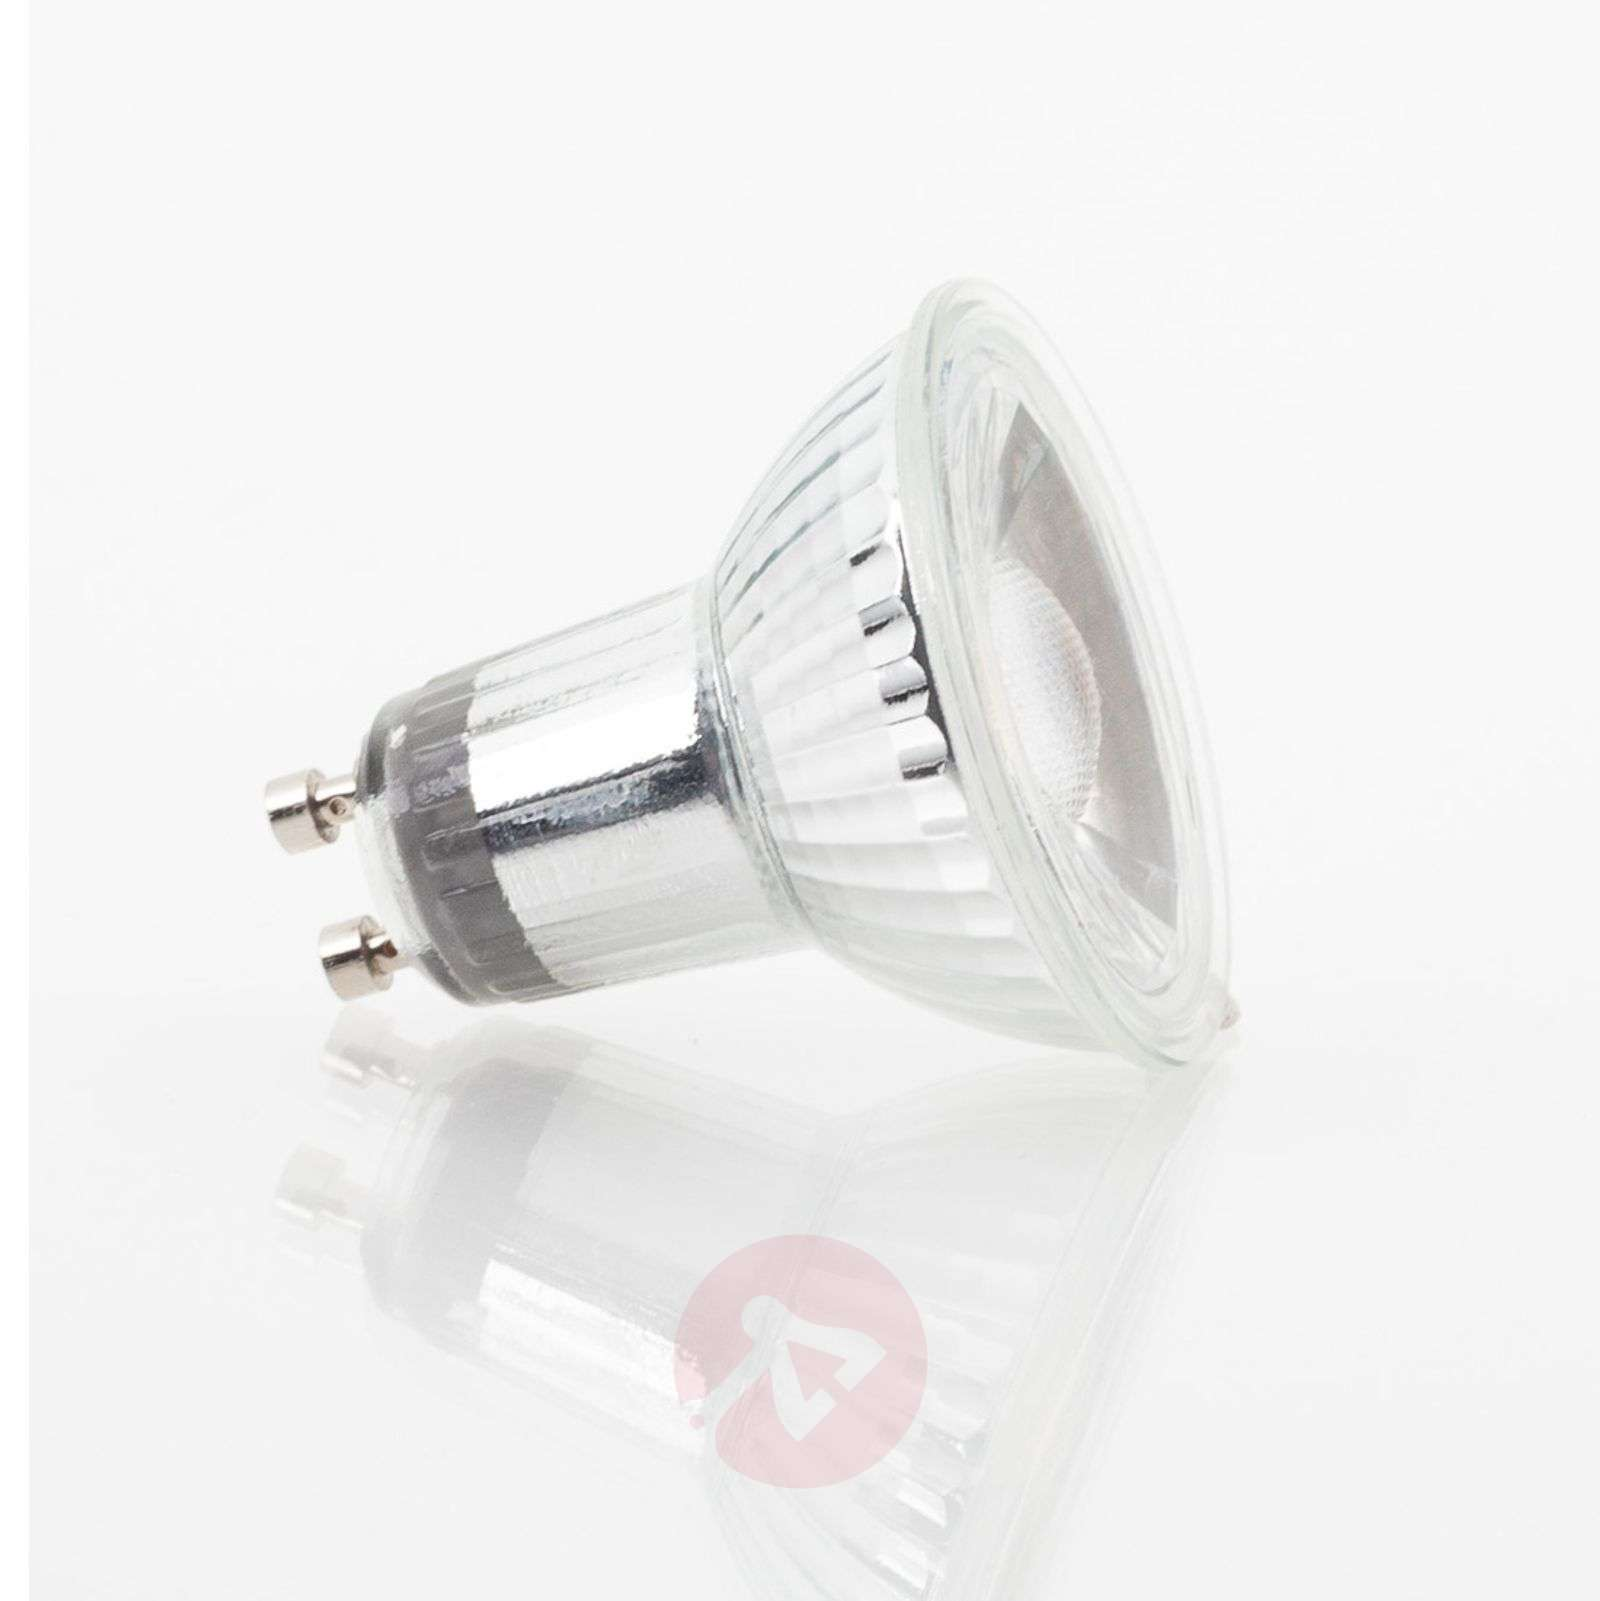 GU10 5 W 830 LED reflector lamp, dimmable-9646006-01